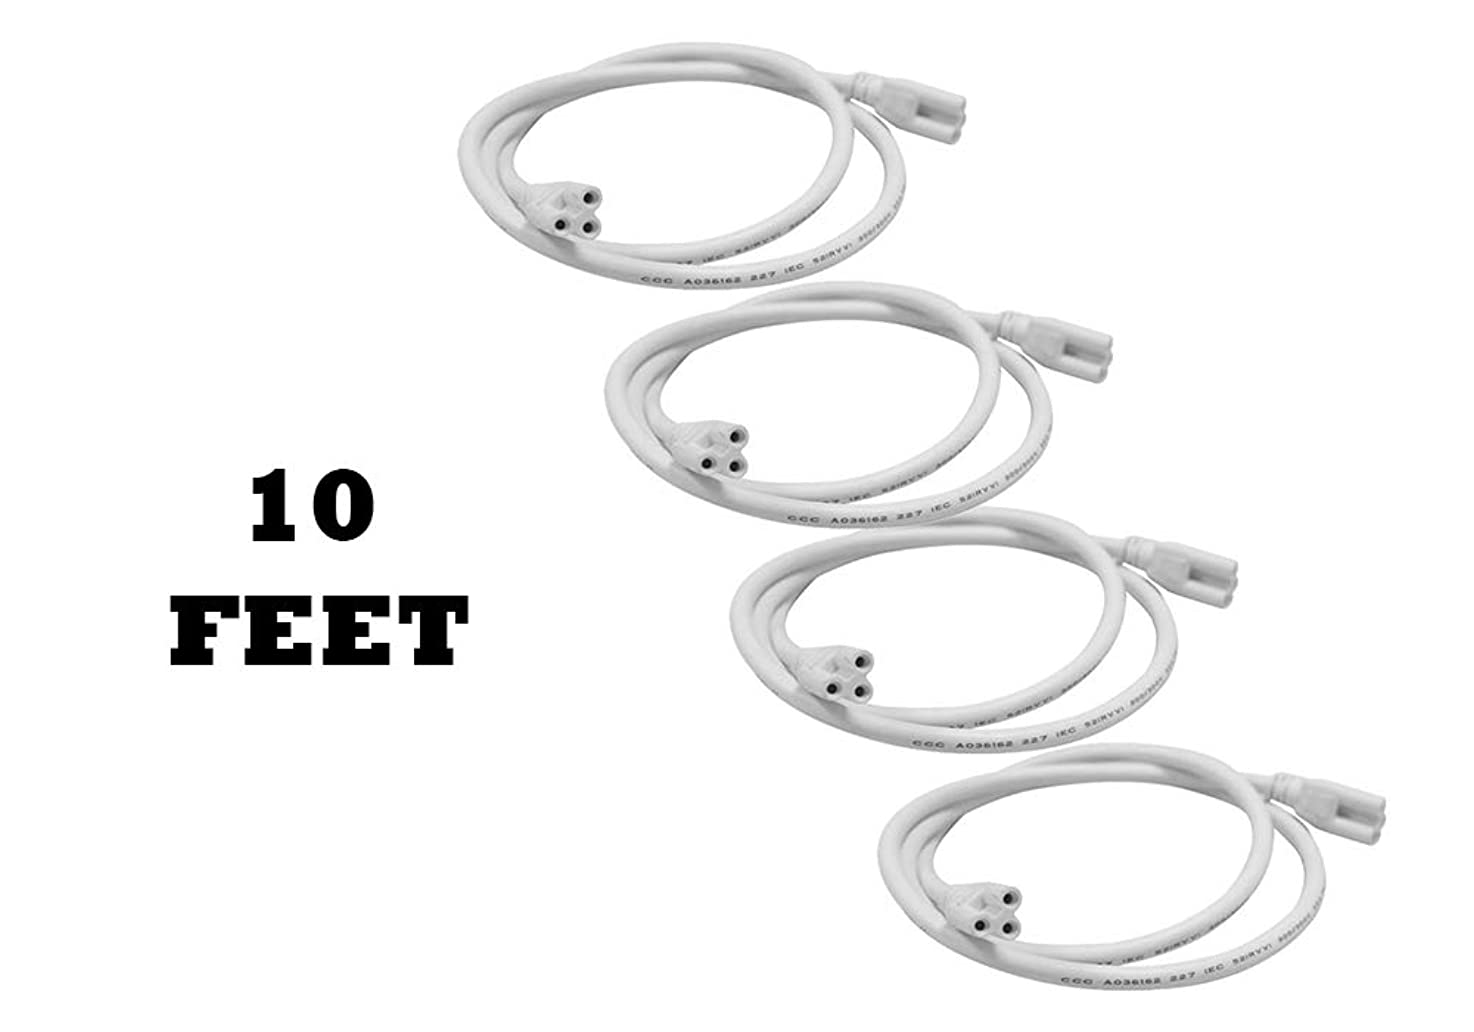 (4 Wire Pack) 10 FT Length T5 T8 LED Integrated Tube Lamp Connecting Wire Cable Cords for Ceiling Lights Lamp Holder Socket Fittings